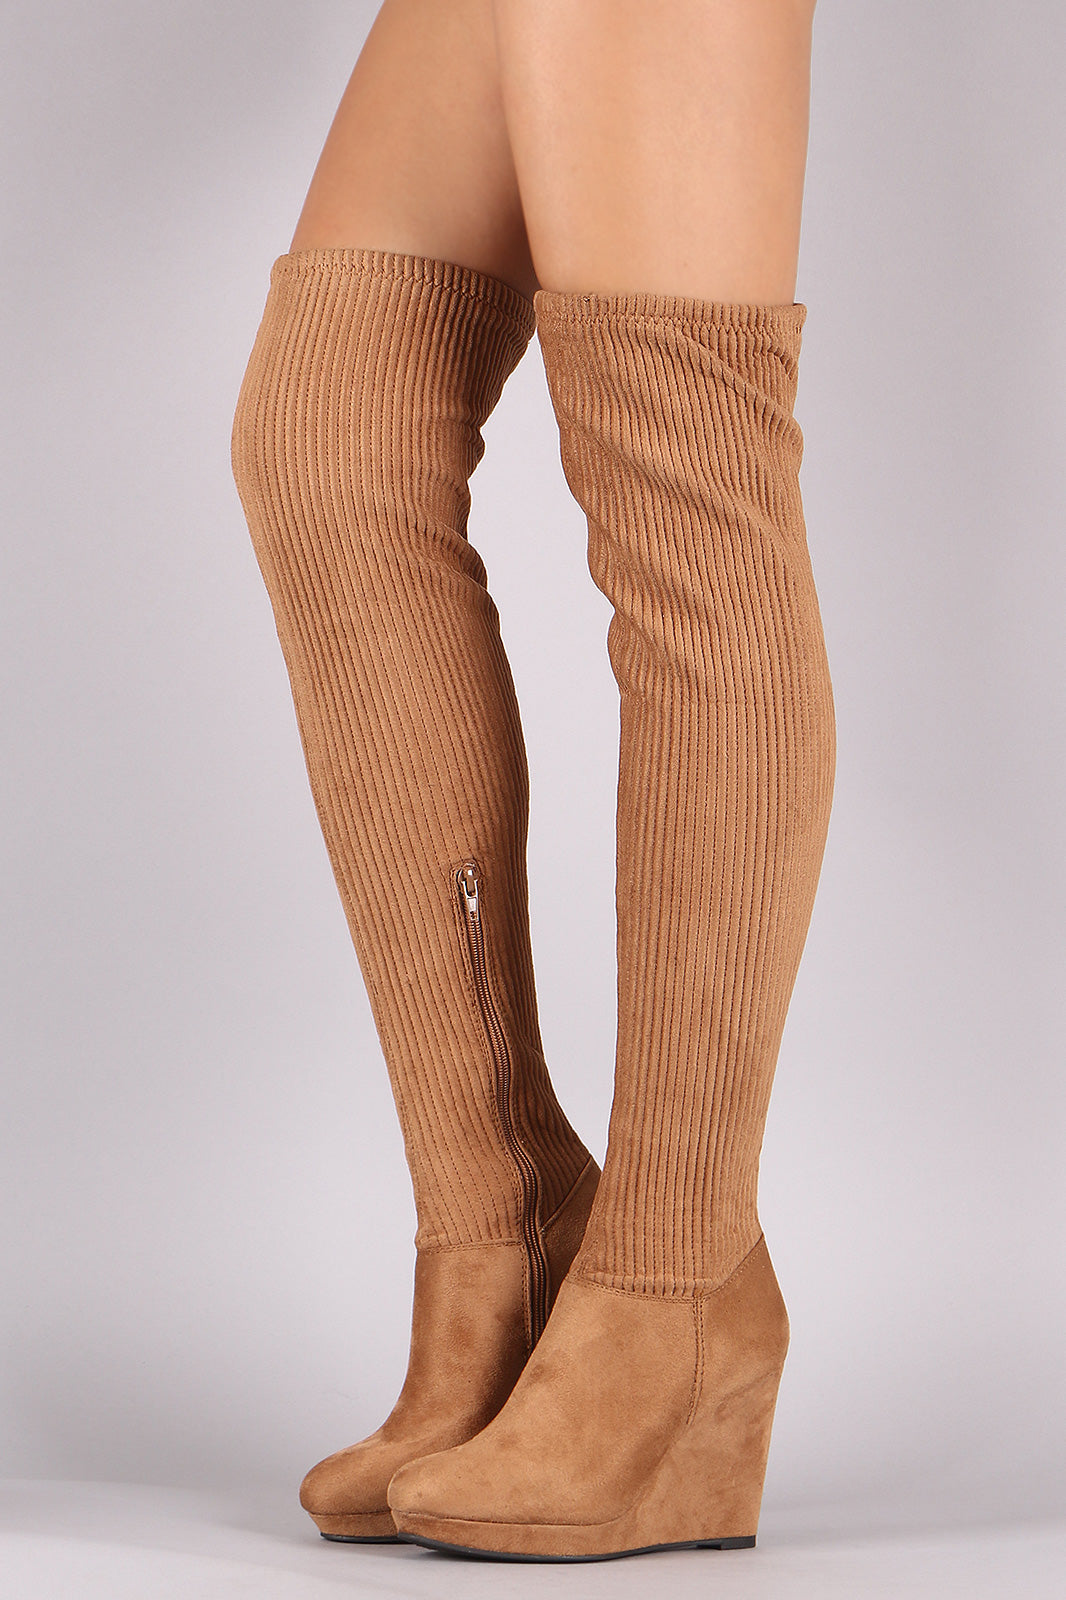 Platform Wedge Boots For Women By Bamboo | Shop Women's Fashion Suede Stitchwork Over-The-Knee Platform Wedge Boots Women's Sandal Thigh High Over The Knee Widge Boots